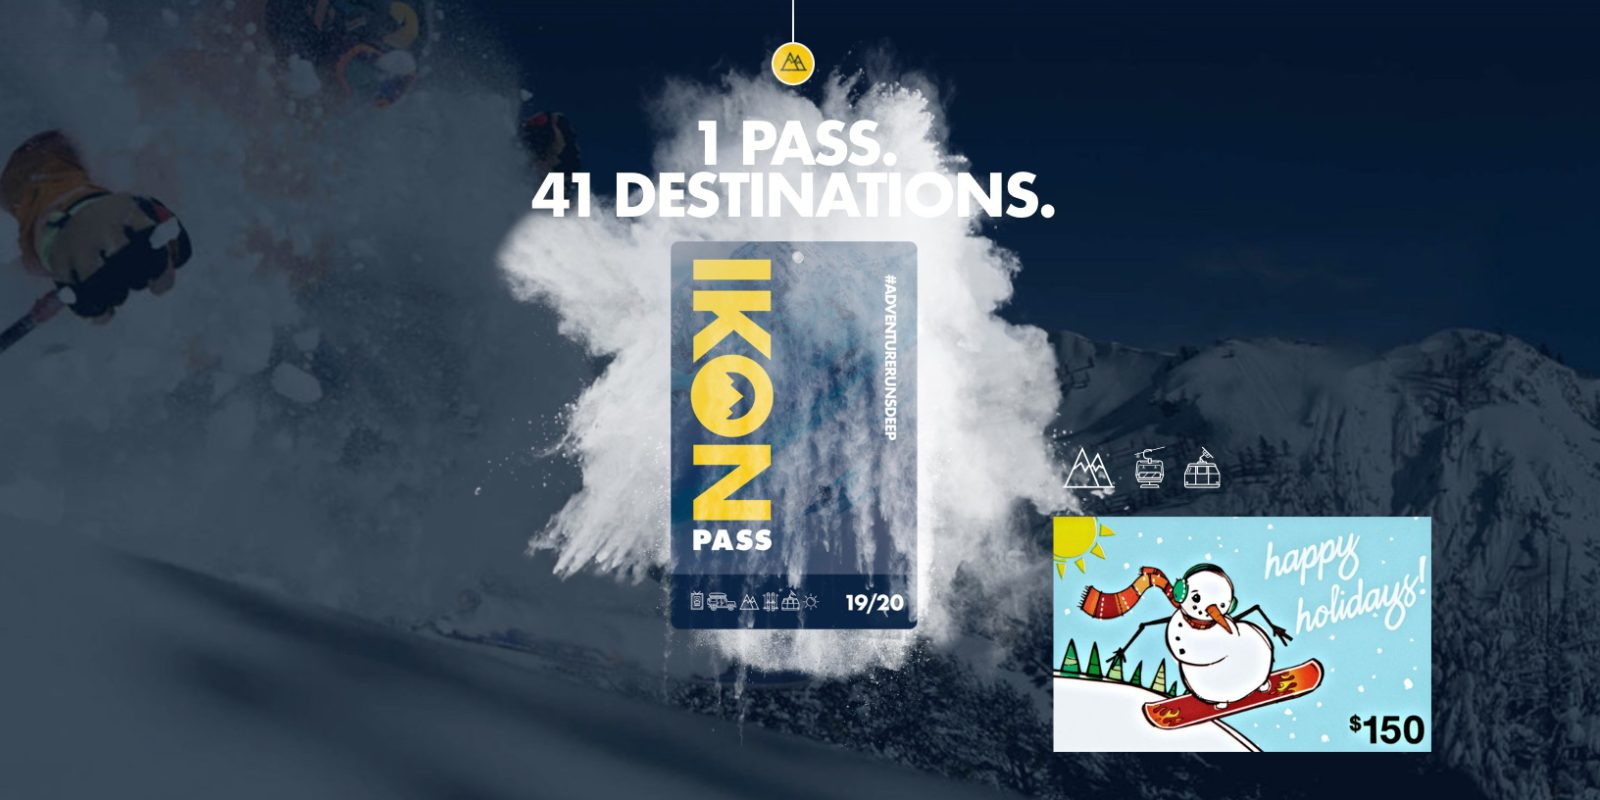 Score a free $150 Amazon gift card with your Ikon Adult Ski and Snowboard Pass